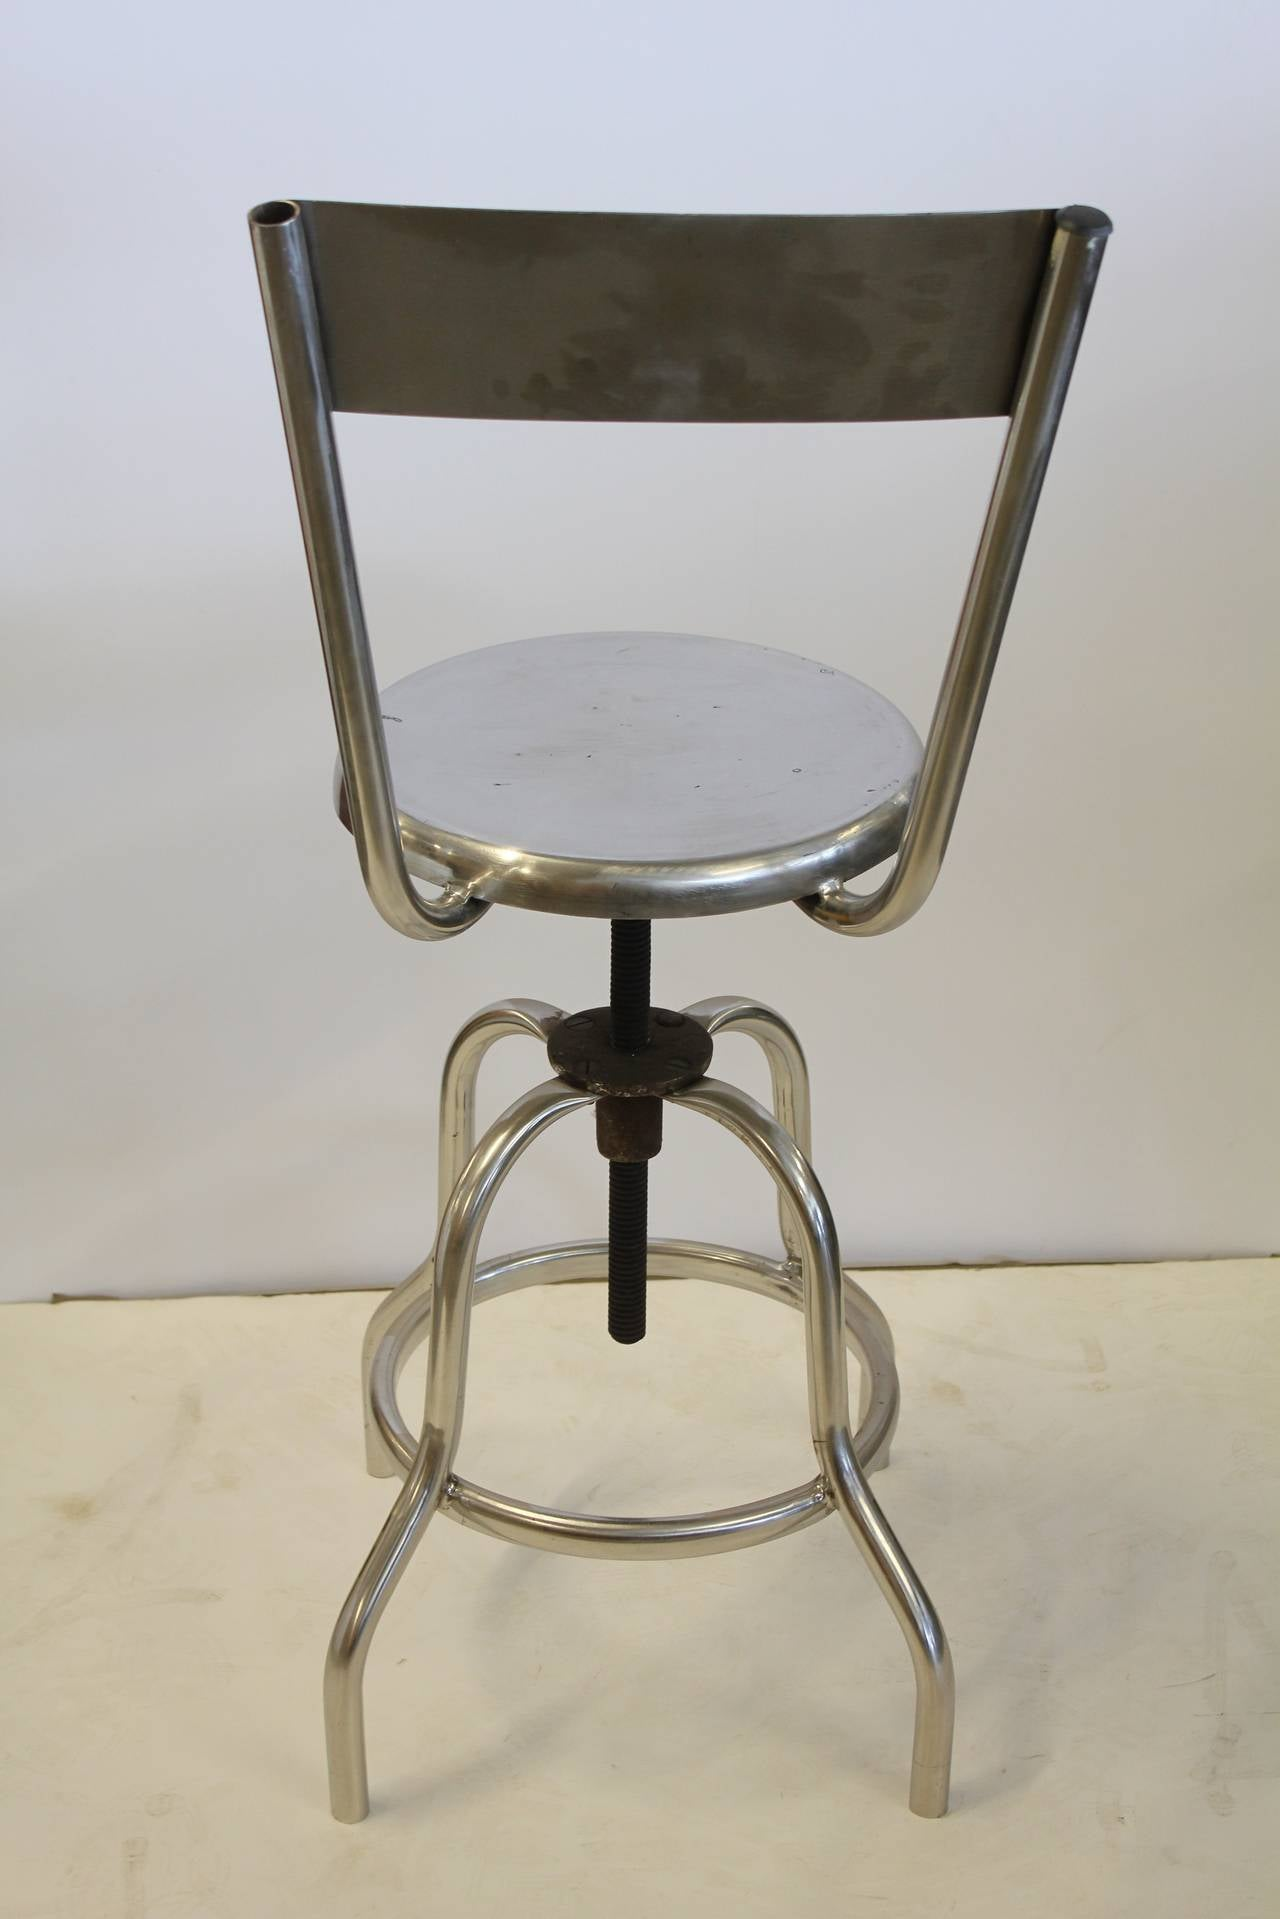 Vintage Industrial Swivel Adjustable Stool In Good Condition For Sale In Chicago, IL